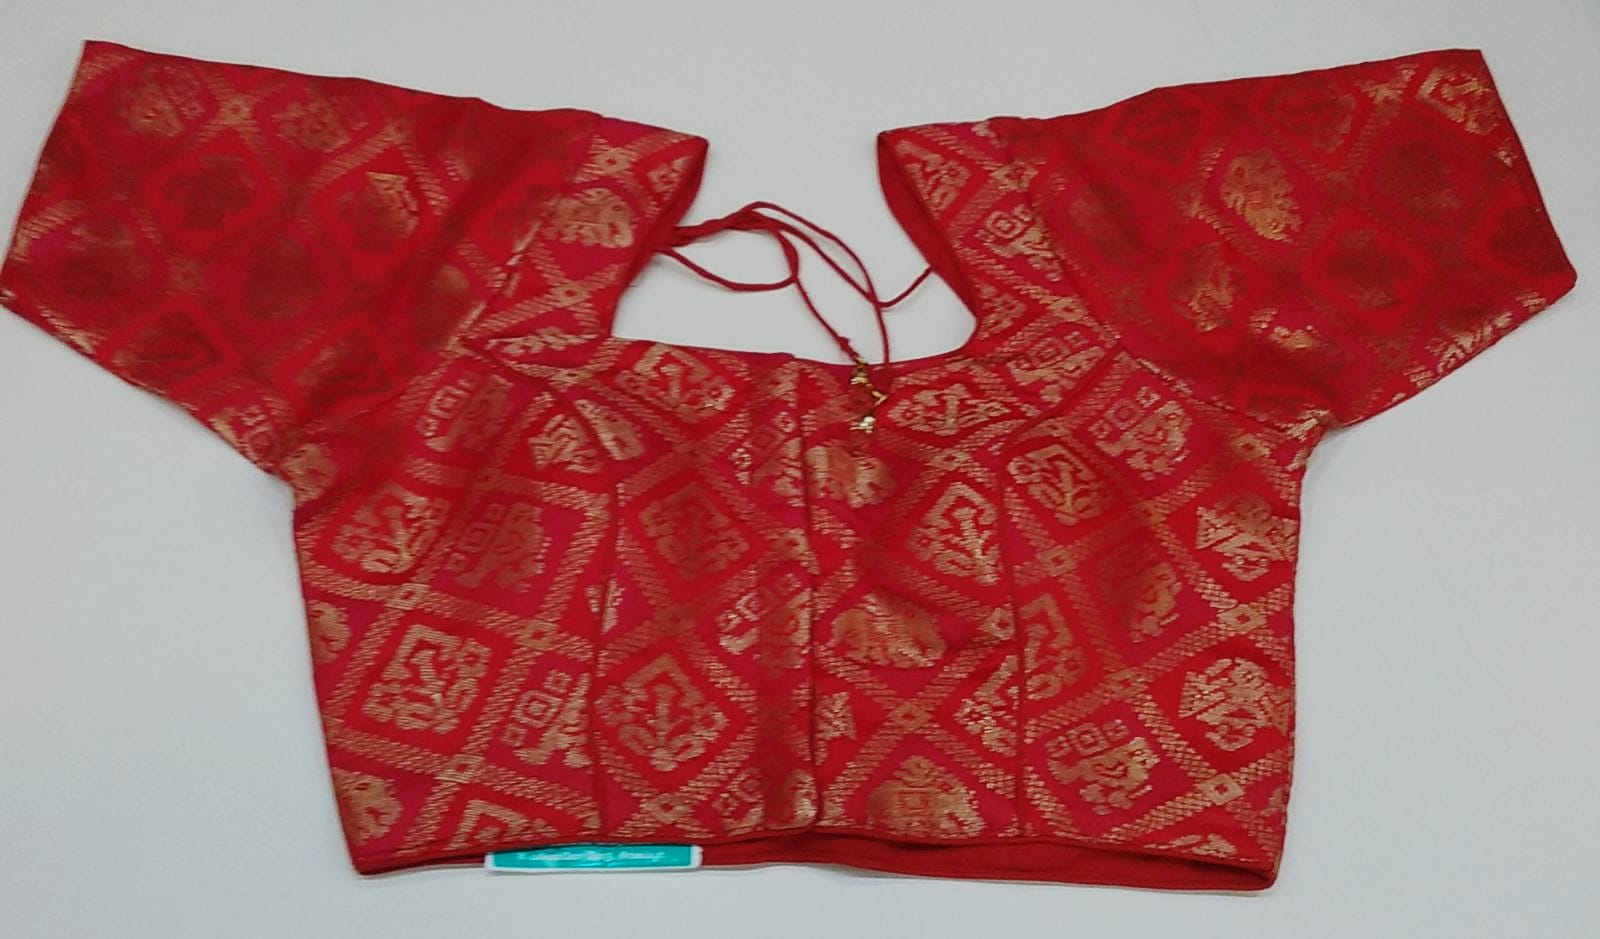 160584 $28.00 RED FANCY SAREE BLOUSE SIZE 34